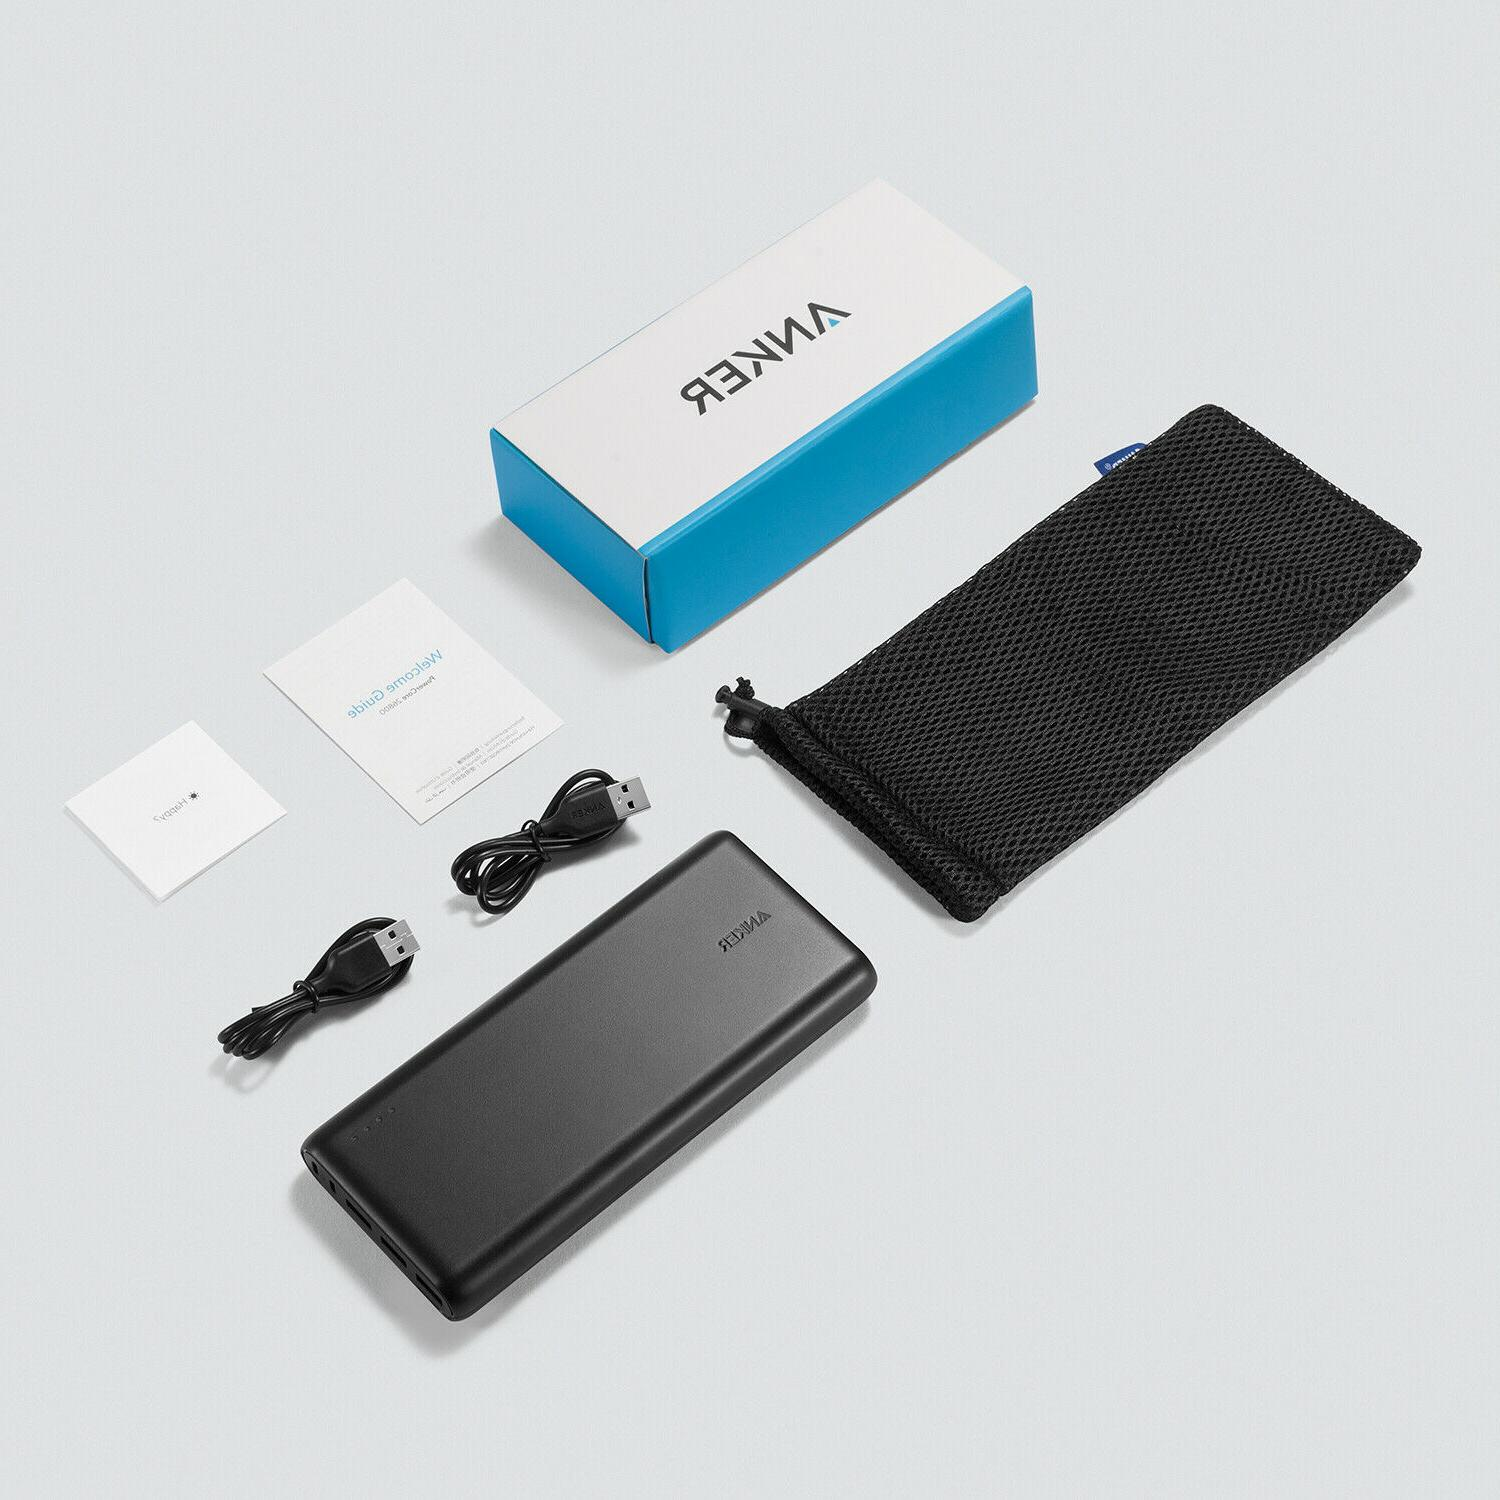 Anker Portable Battery for iPhone